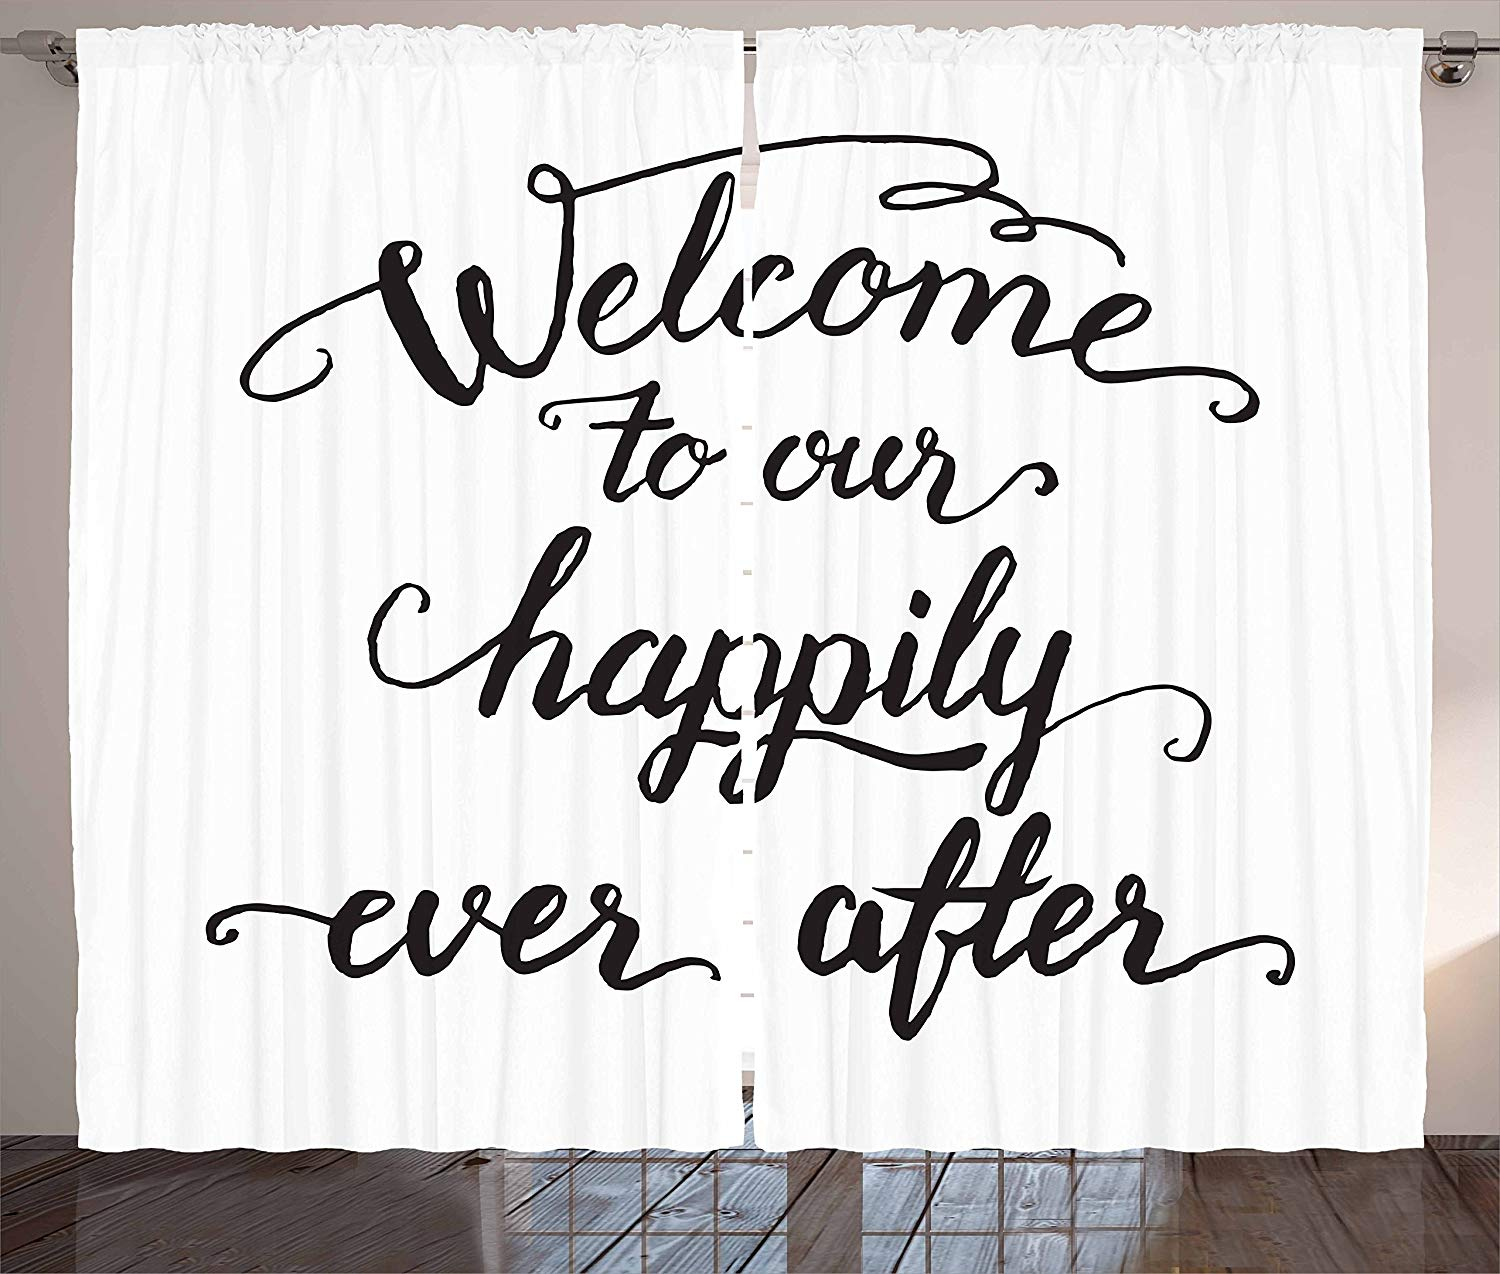 Quote Curtains Vintage Fountain Pen Lettering Wedding Phrase Welcome to Our Happily Ever After Living Room Bedroom Window Drapes image